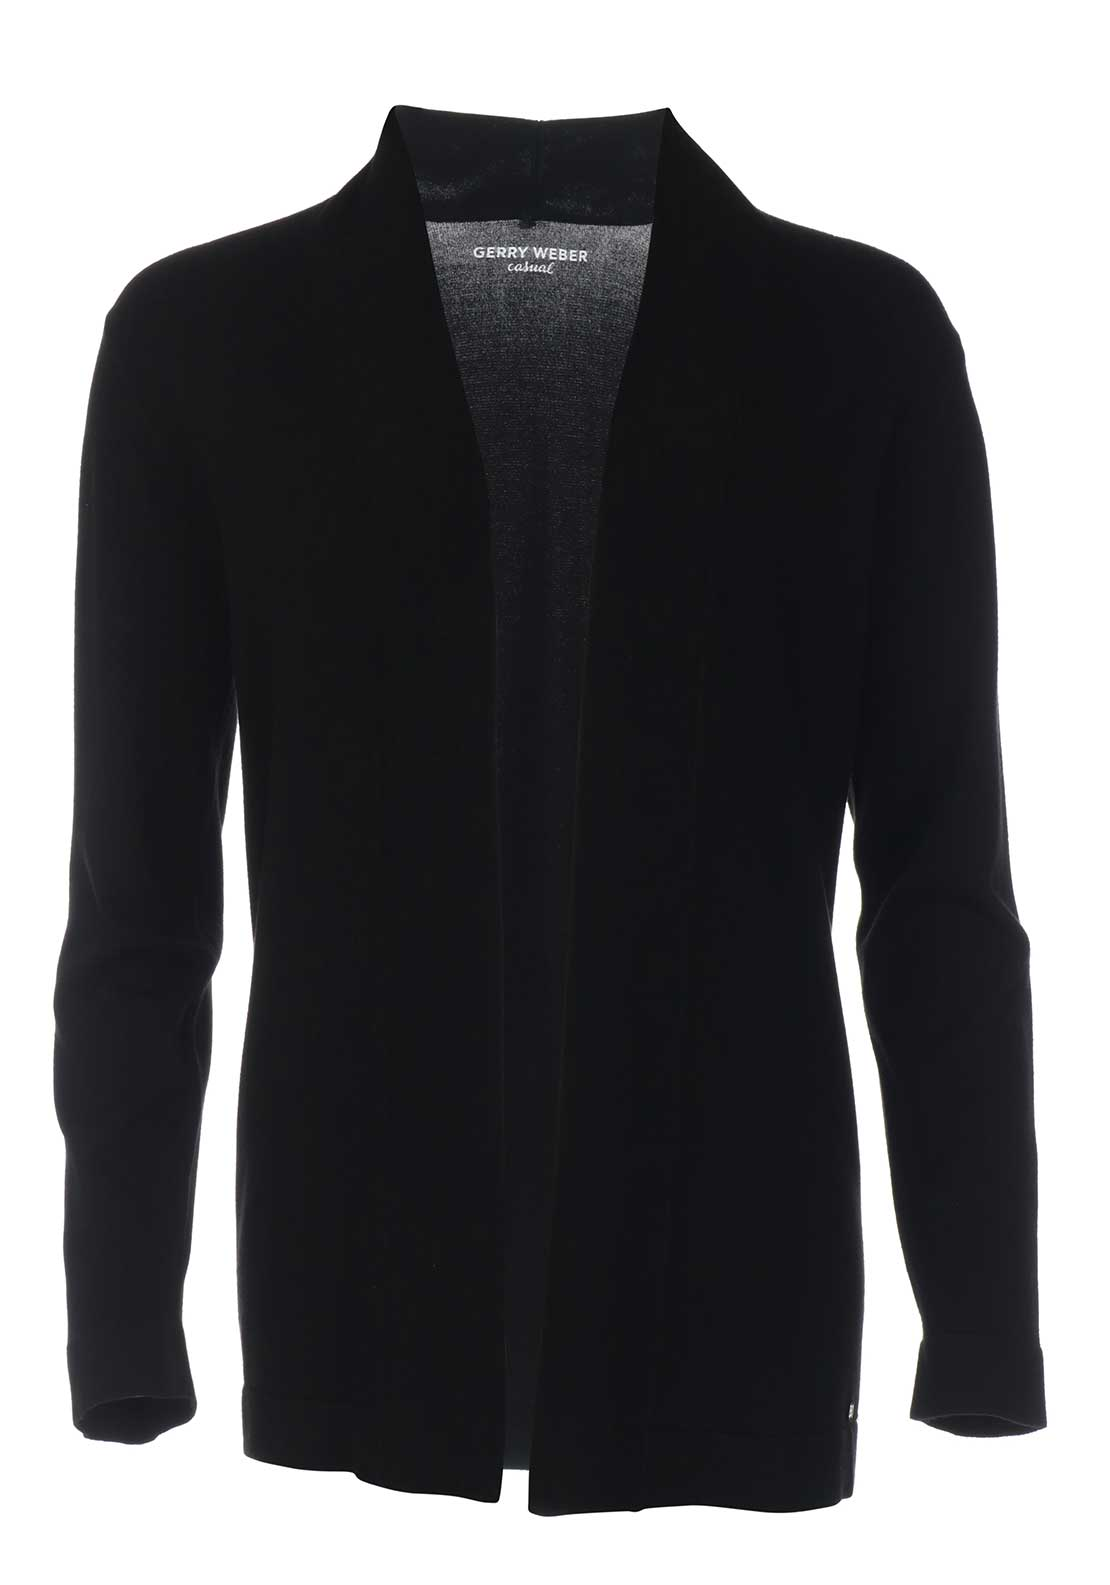 Gerry Weber Fine Knit Cardigan, Black